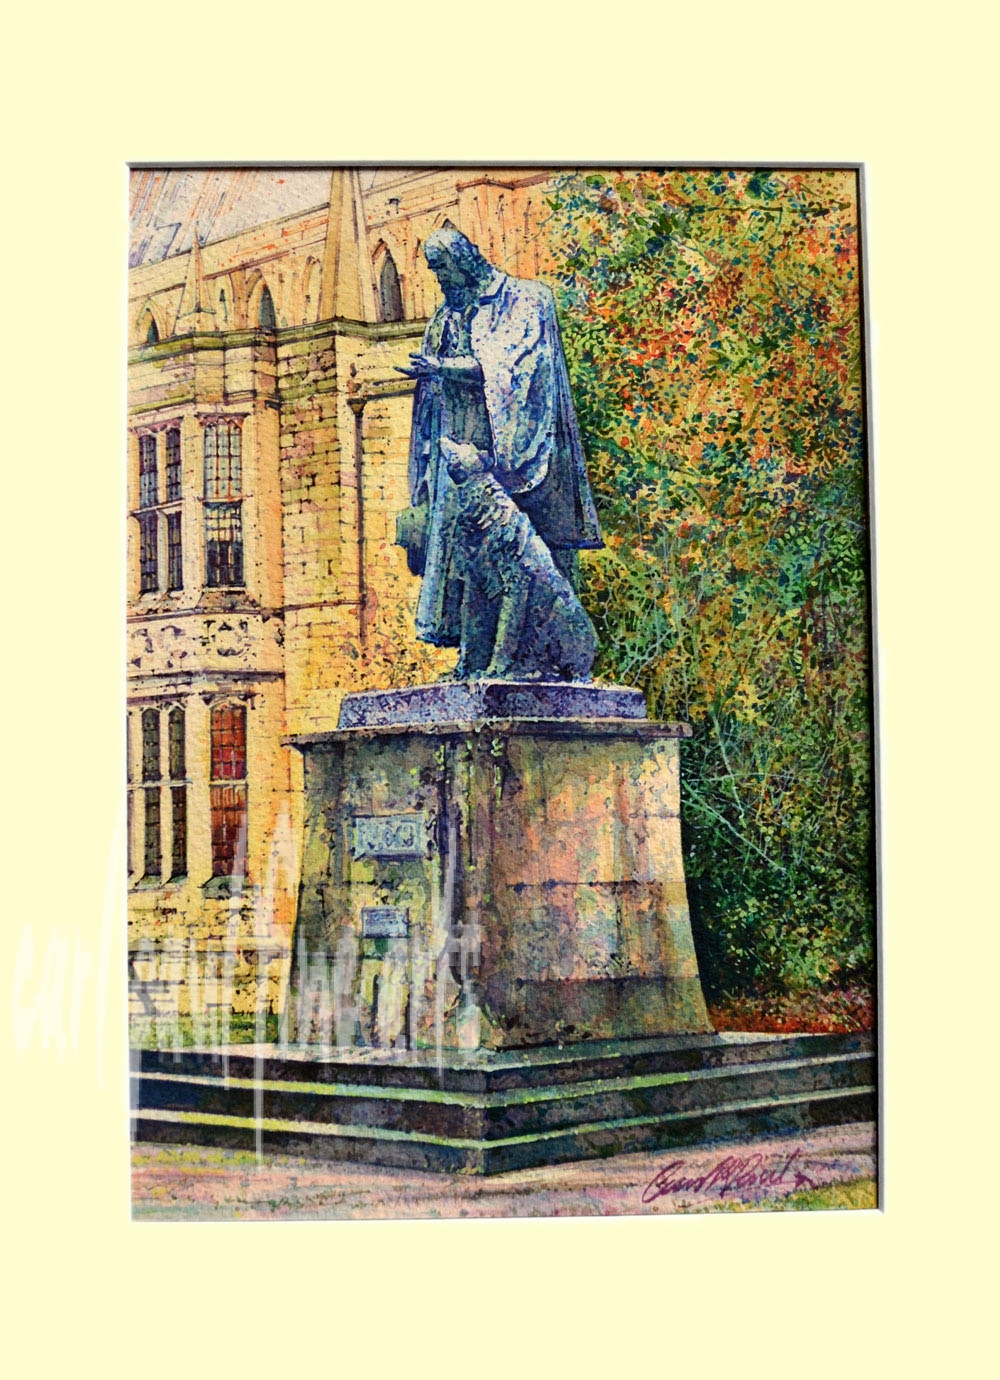 Tennyson, Cathedral Green, Colours of Nature, Lincoln Original